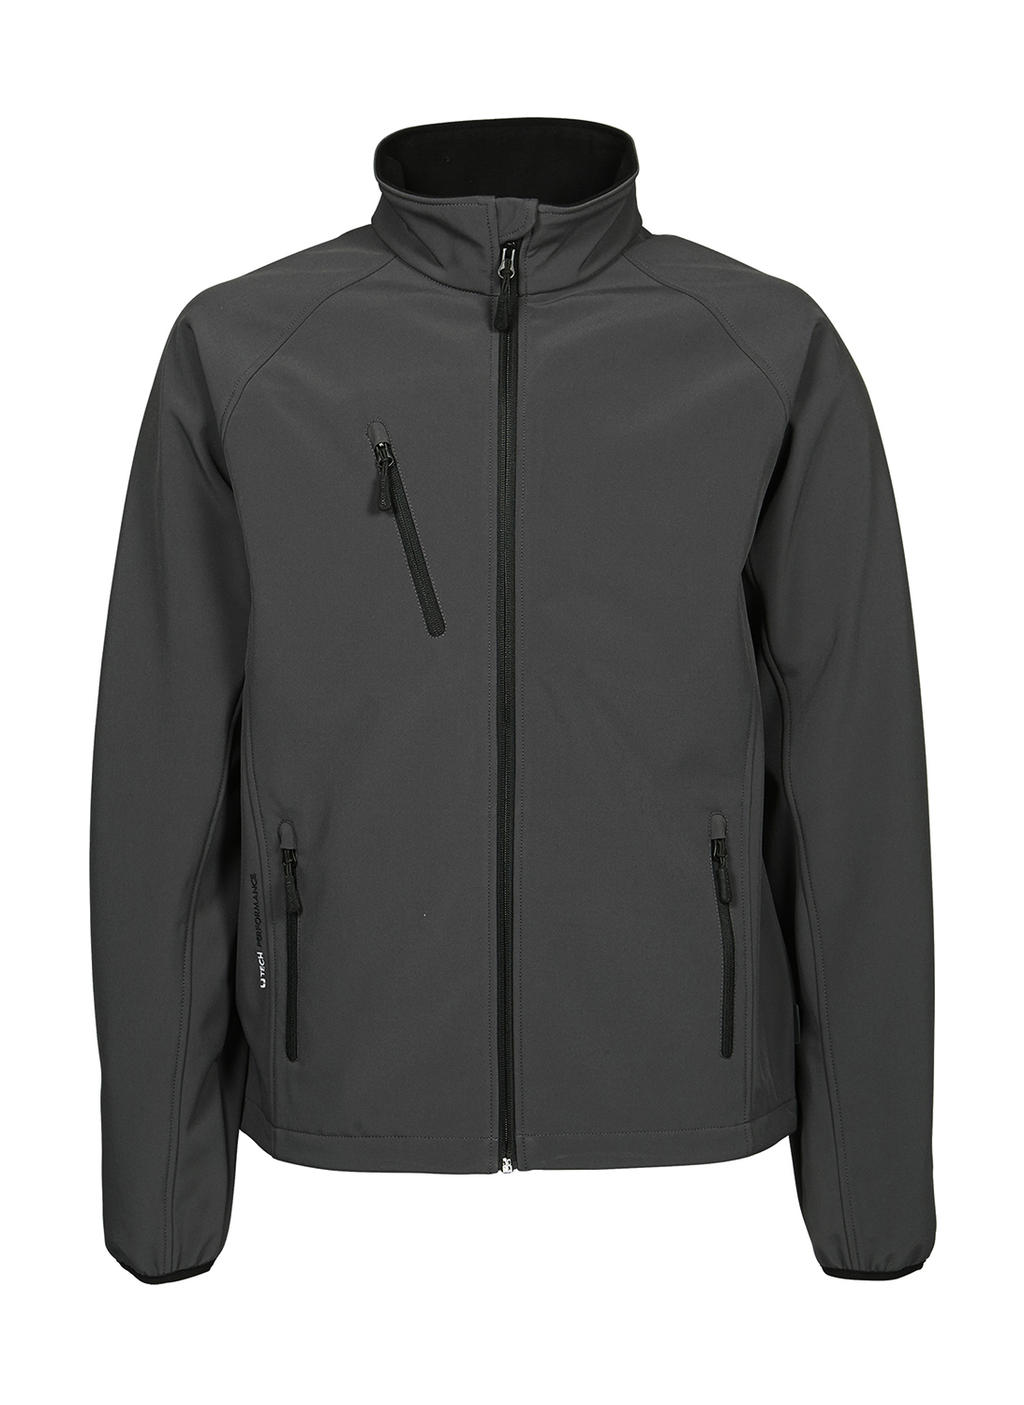 Tee Jays Performance Softshell Jacket